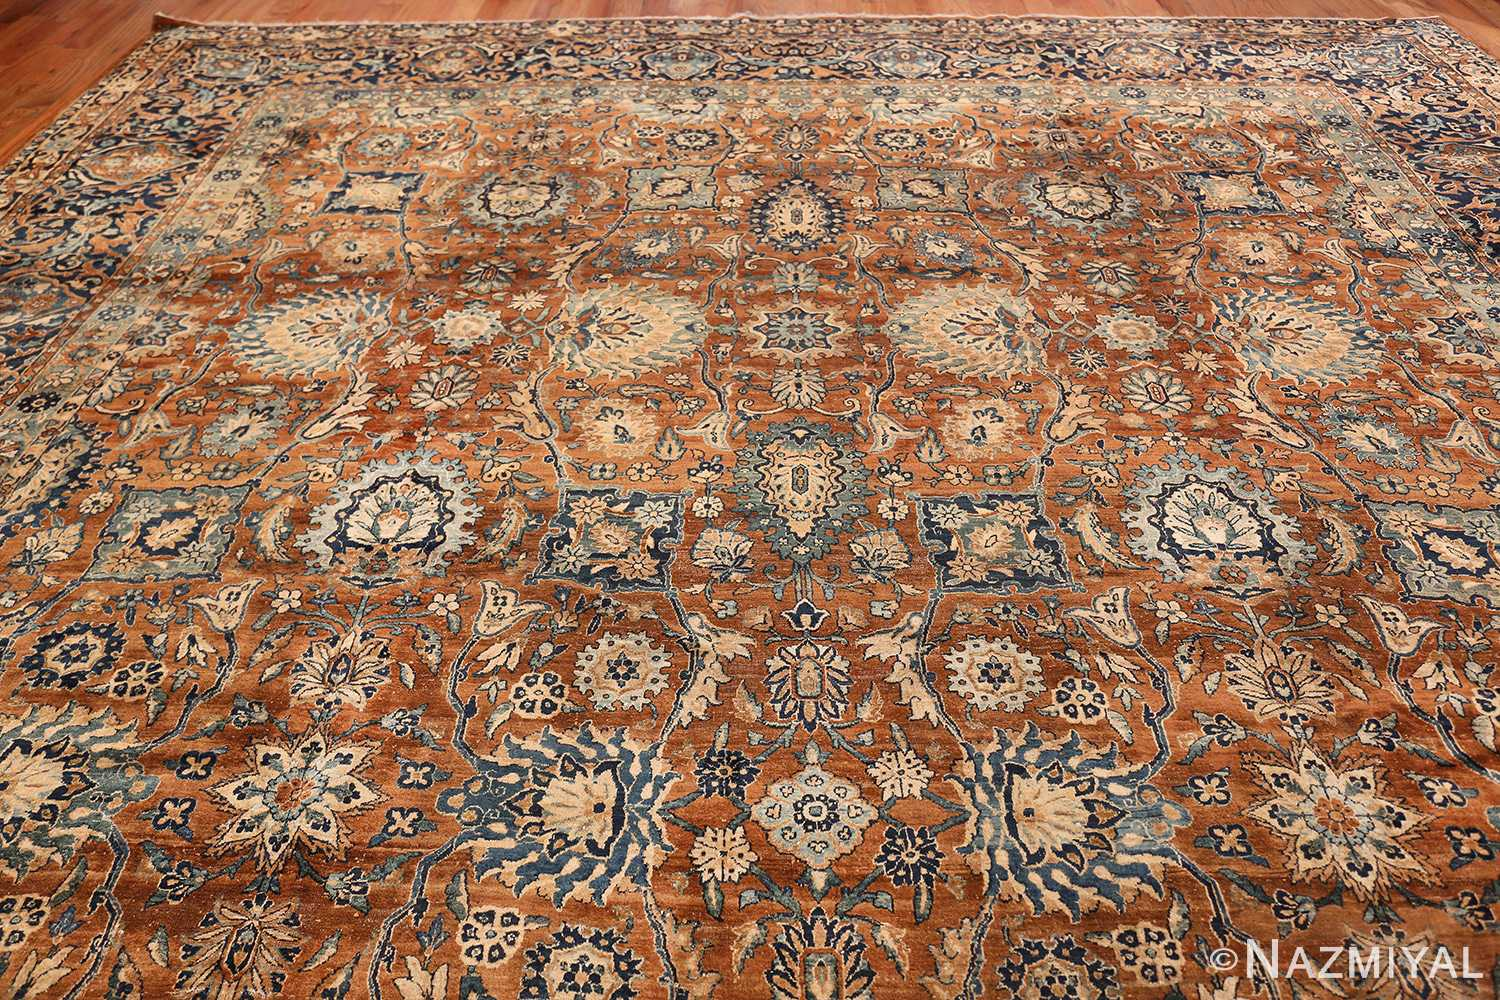 Oversized Antique Persian Kerman Carpet 50192 Top Design Nazmiyal